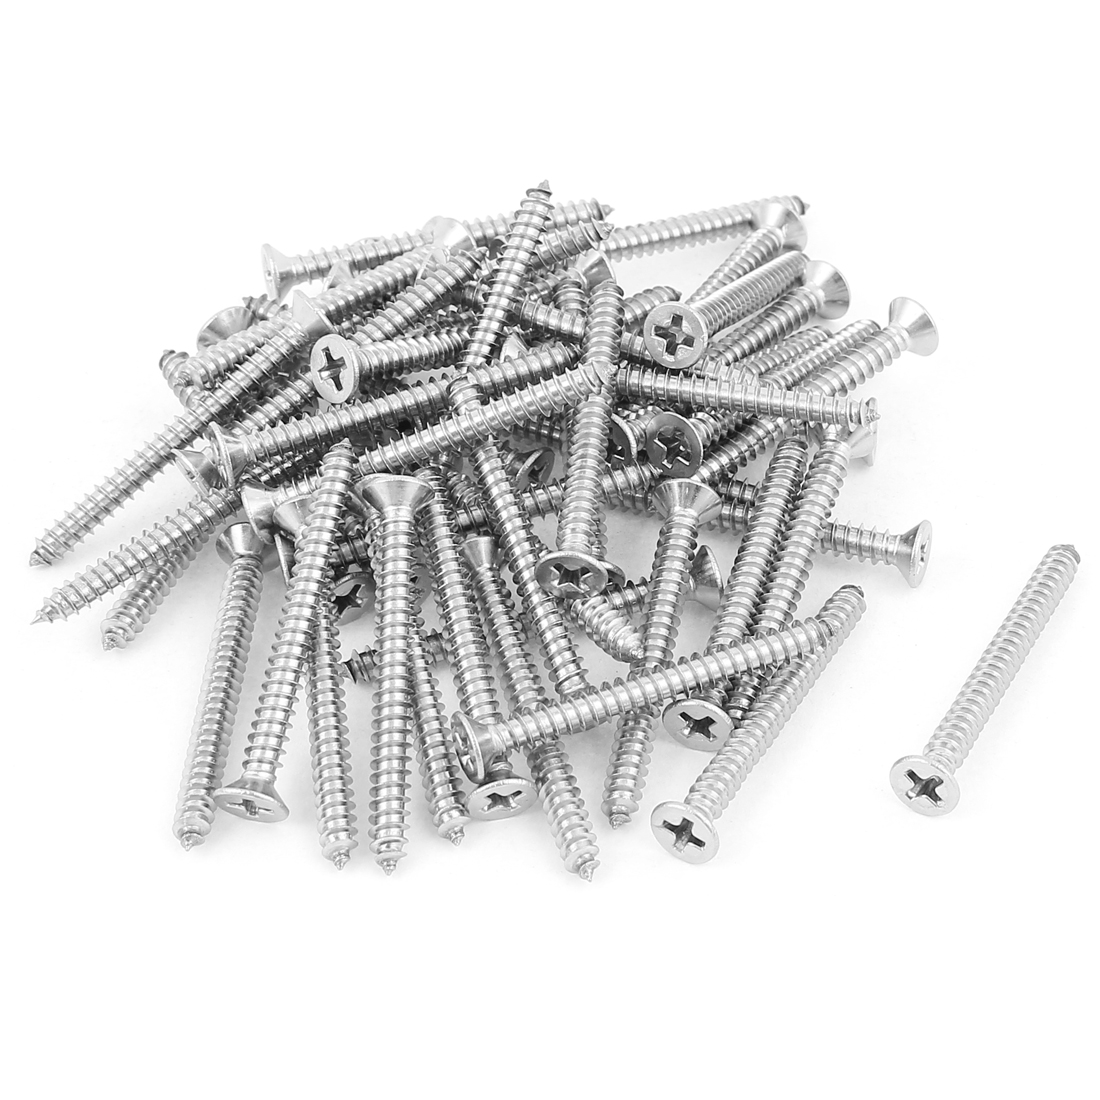 M4x40mm Phillips Flat Head Stainless Steel Self Tapping Screws Fastener 50Pcs